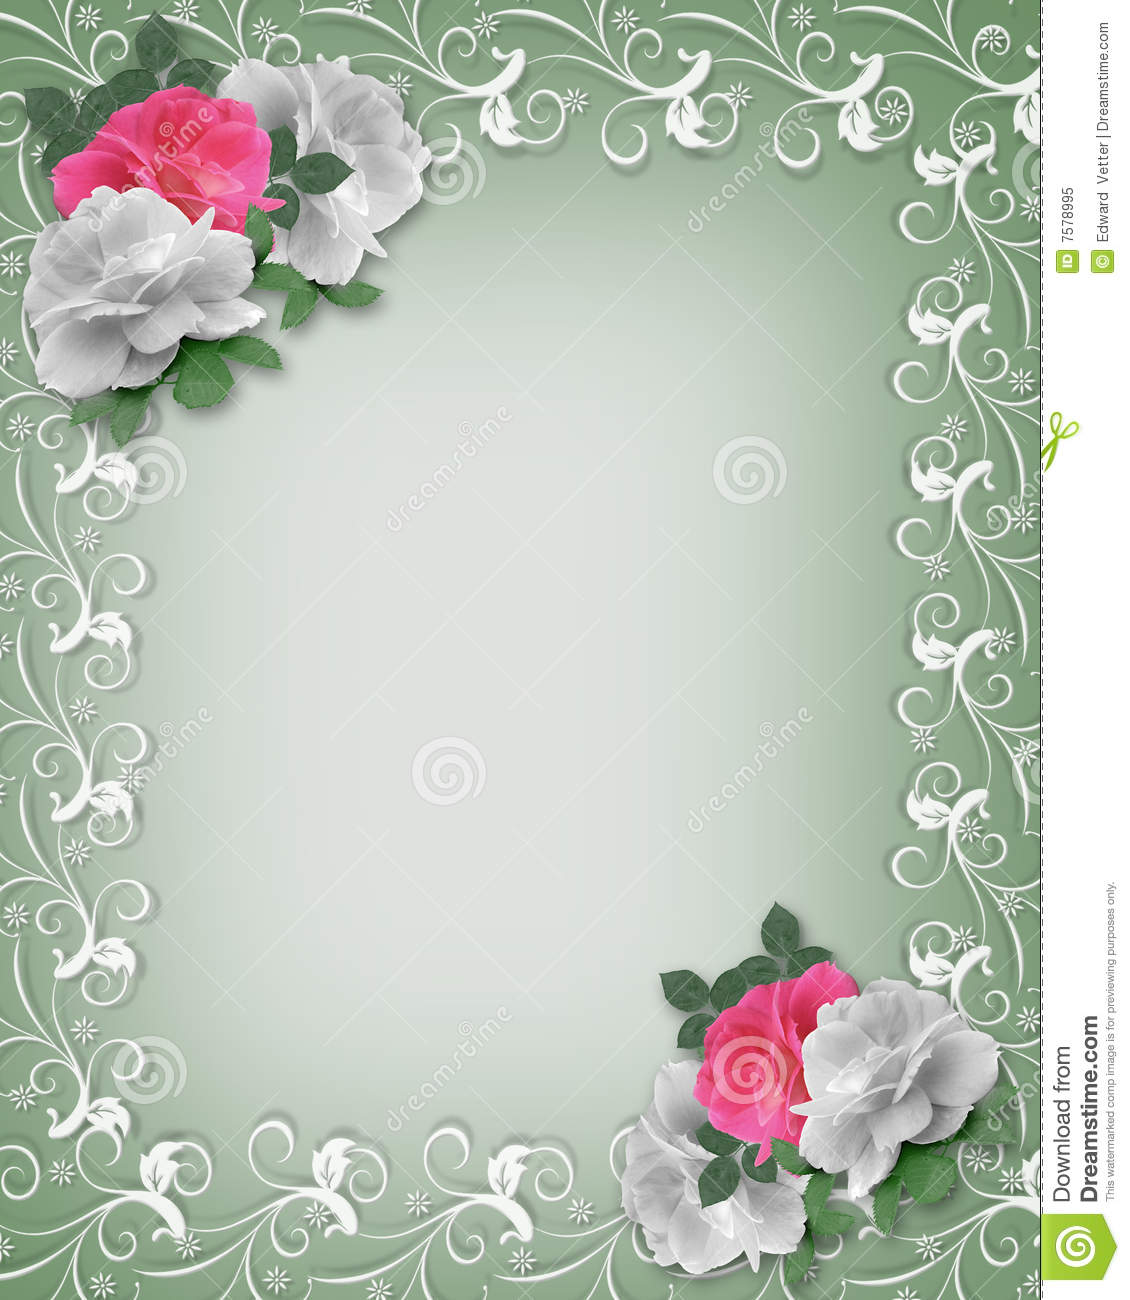 wedding border pink and white roses royalty free stock